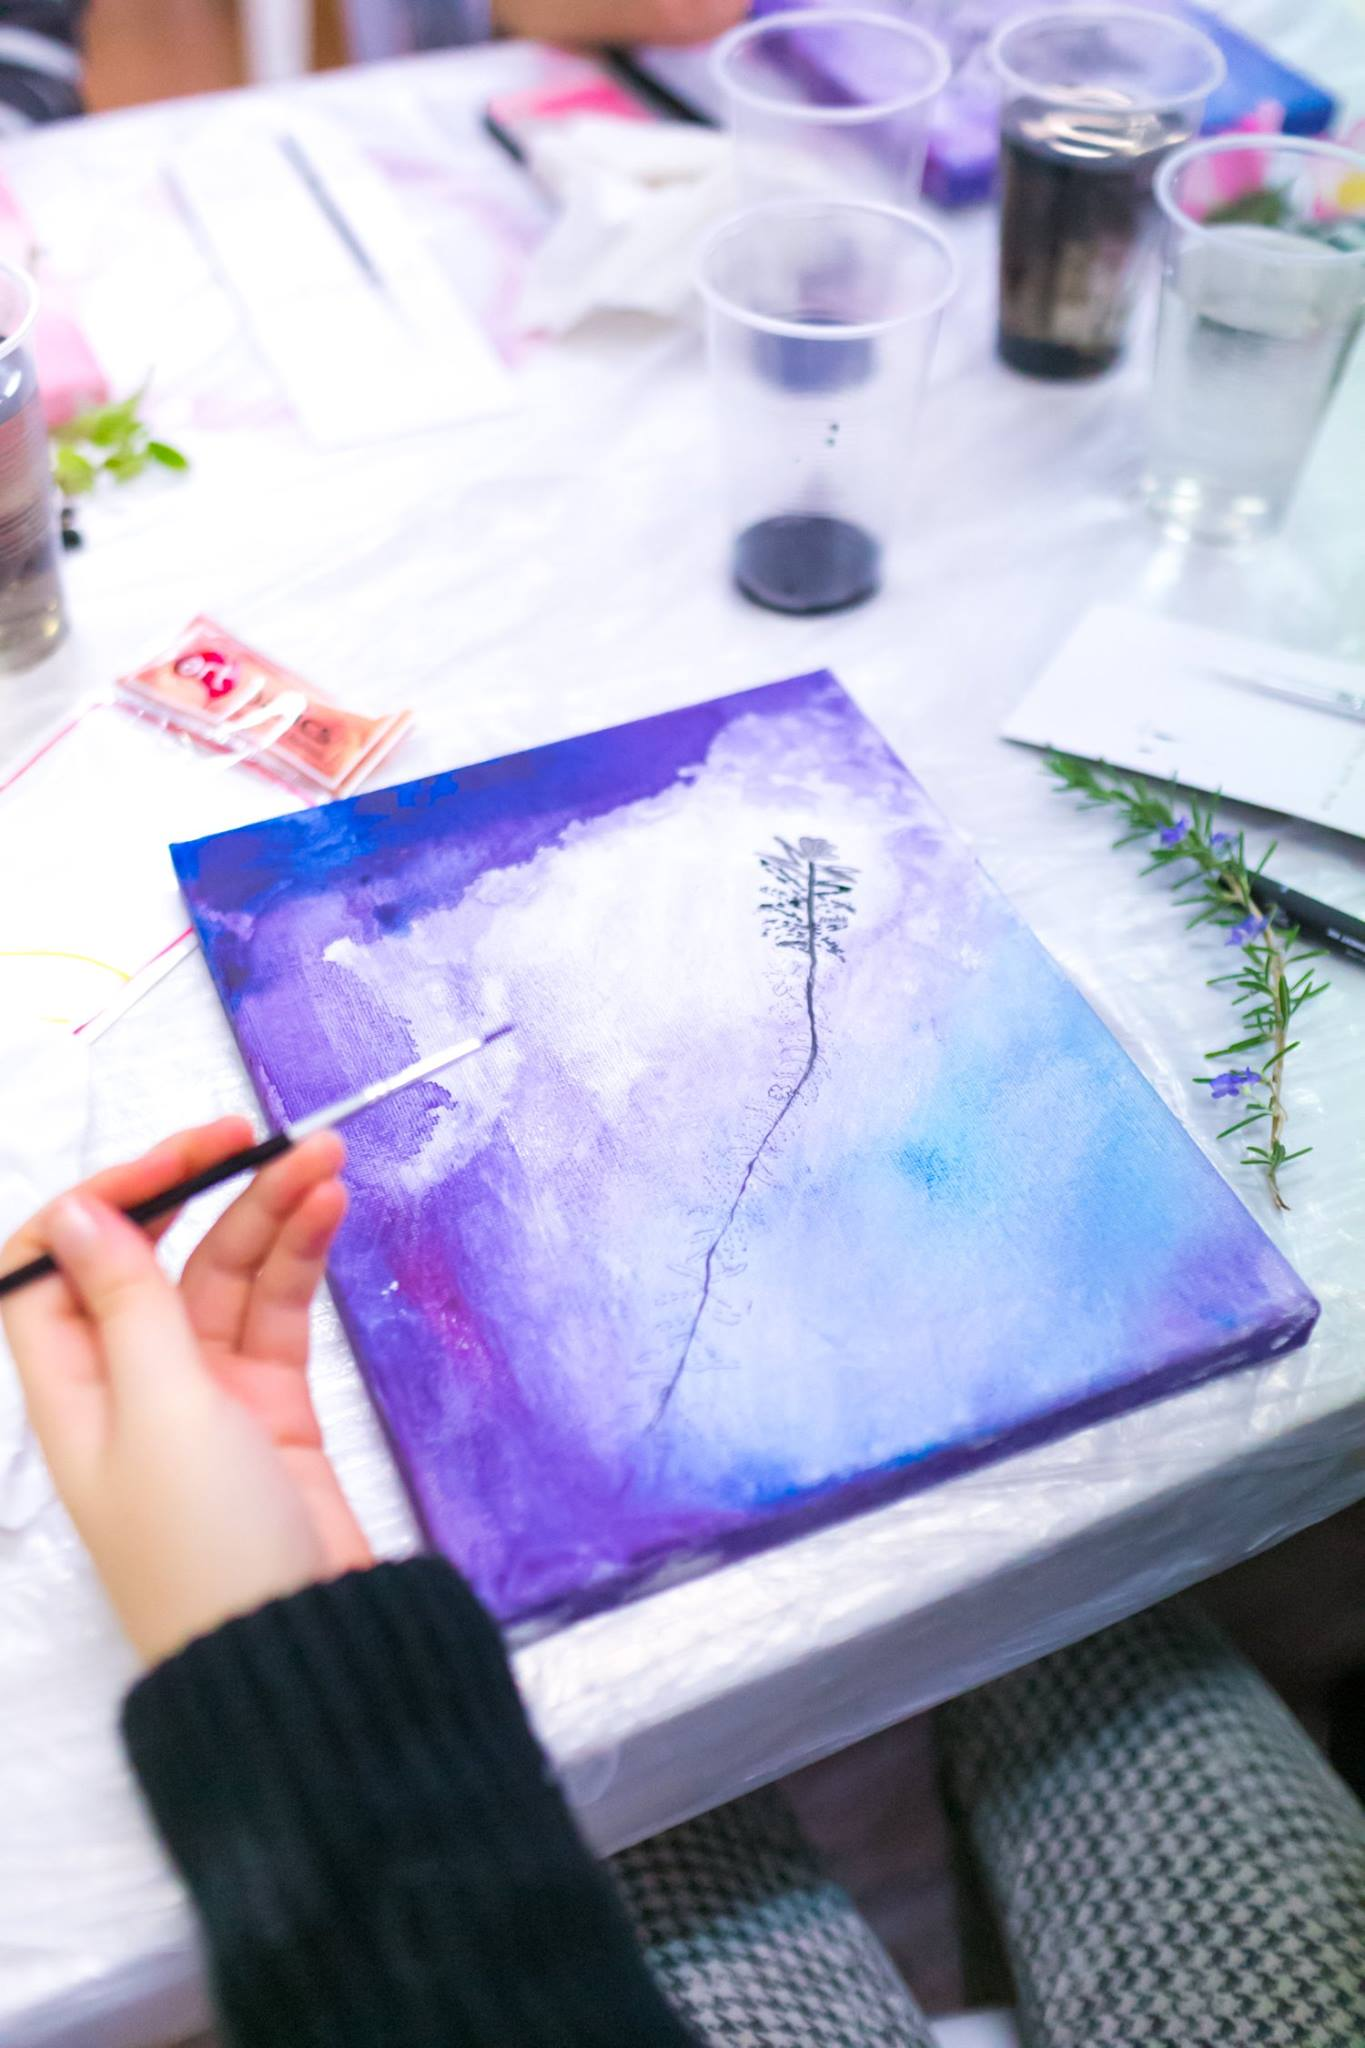 An artwork coming to life, in the creative painting workshop facilitated by painter Yaeli Ohana